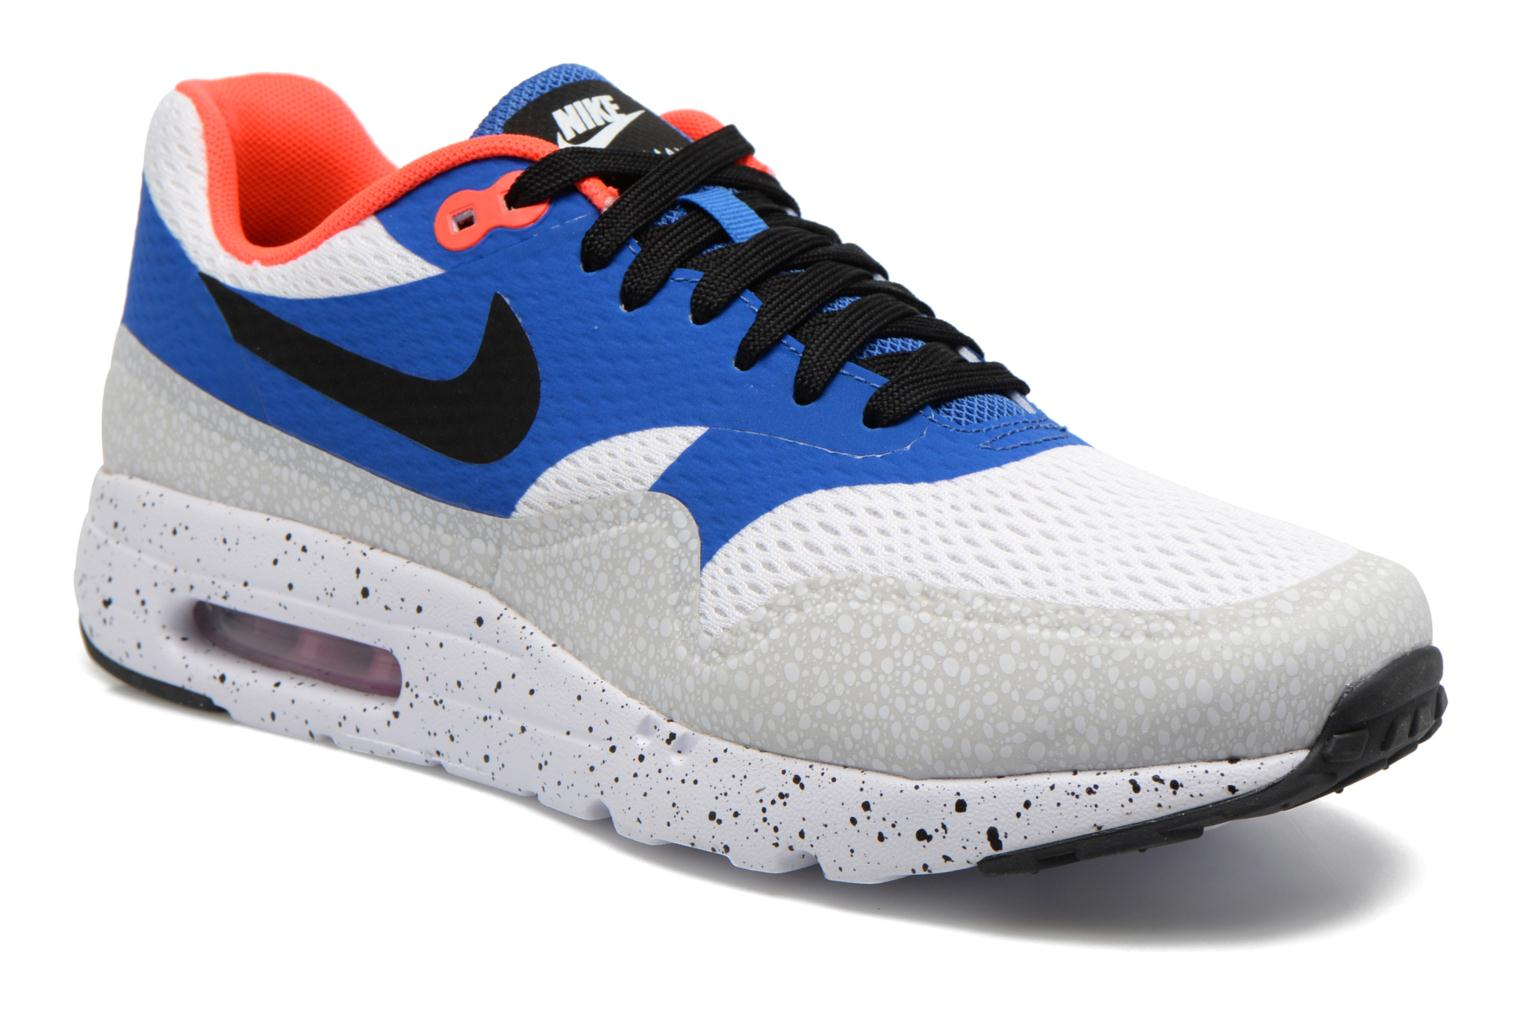 Nike Air Max 1 Ultra Essential White/Blk-Vrsty Ryl-Rflct Slvr